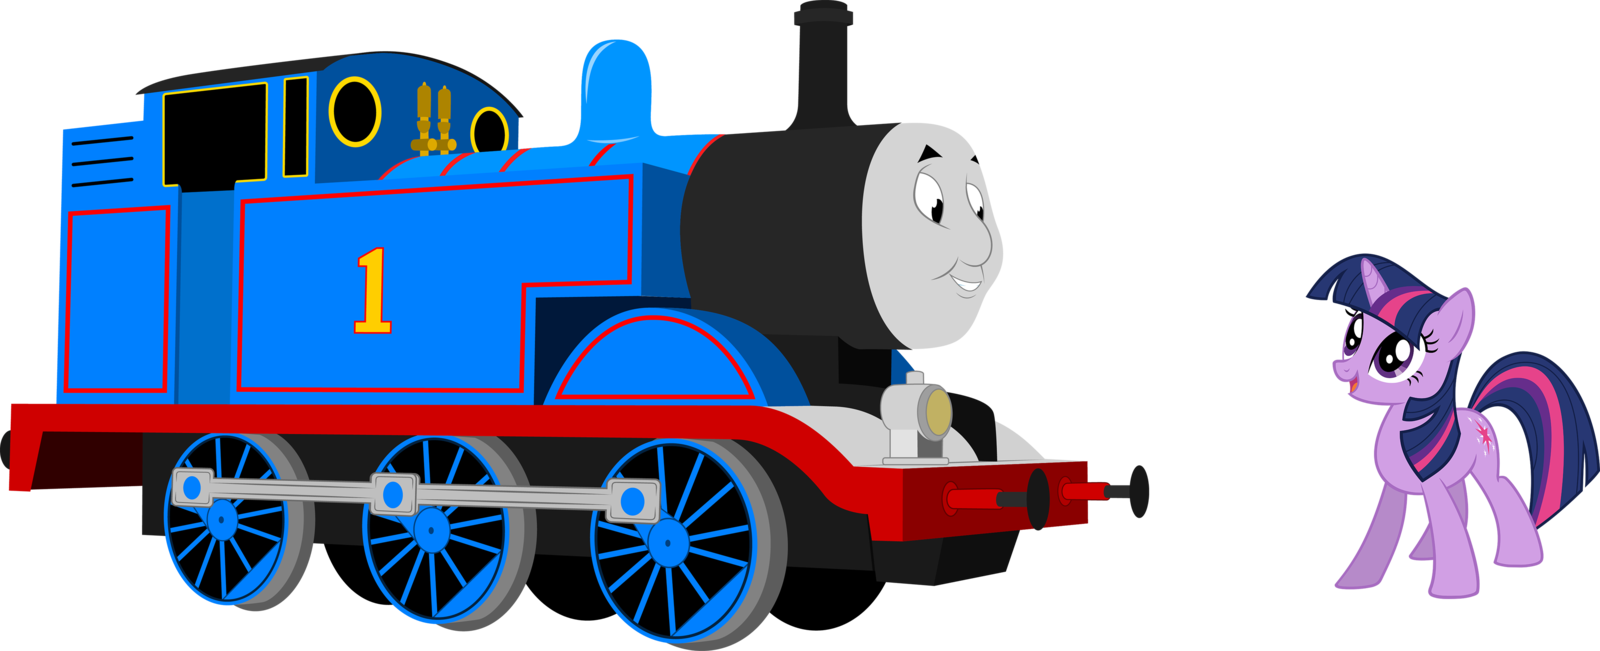 Thomas drawing toy train. The and friends clipart